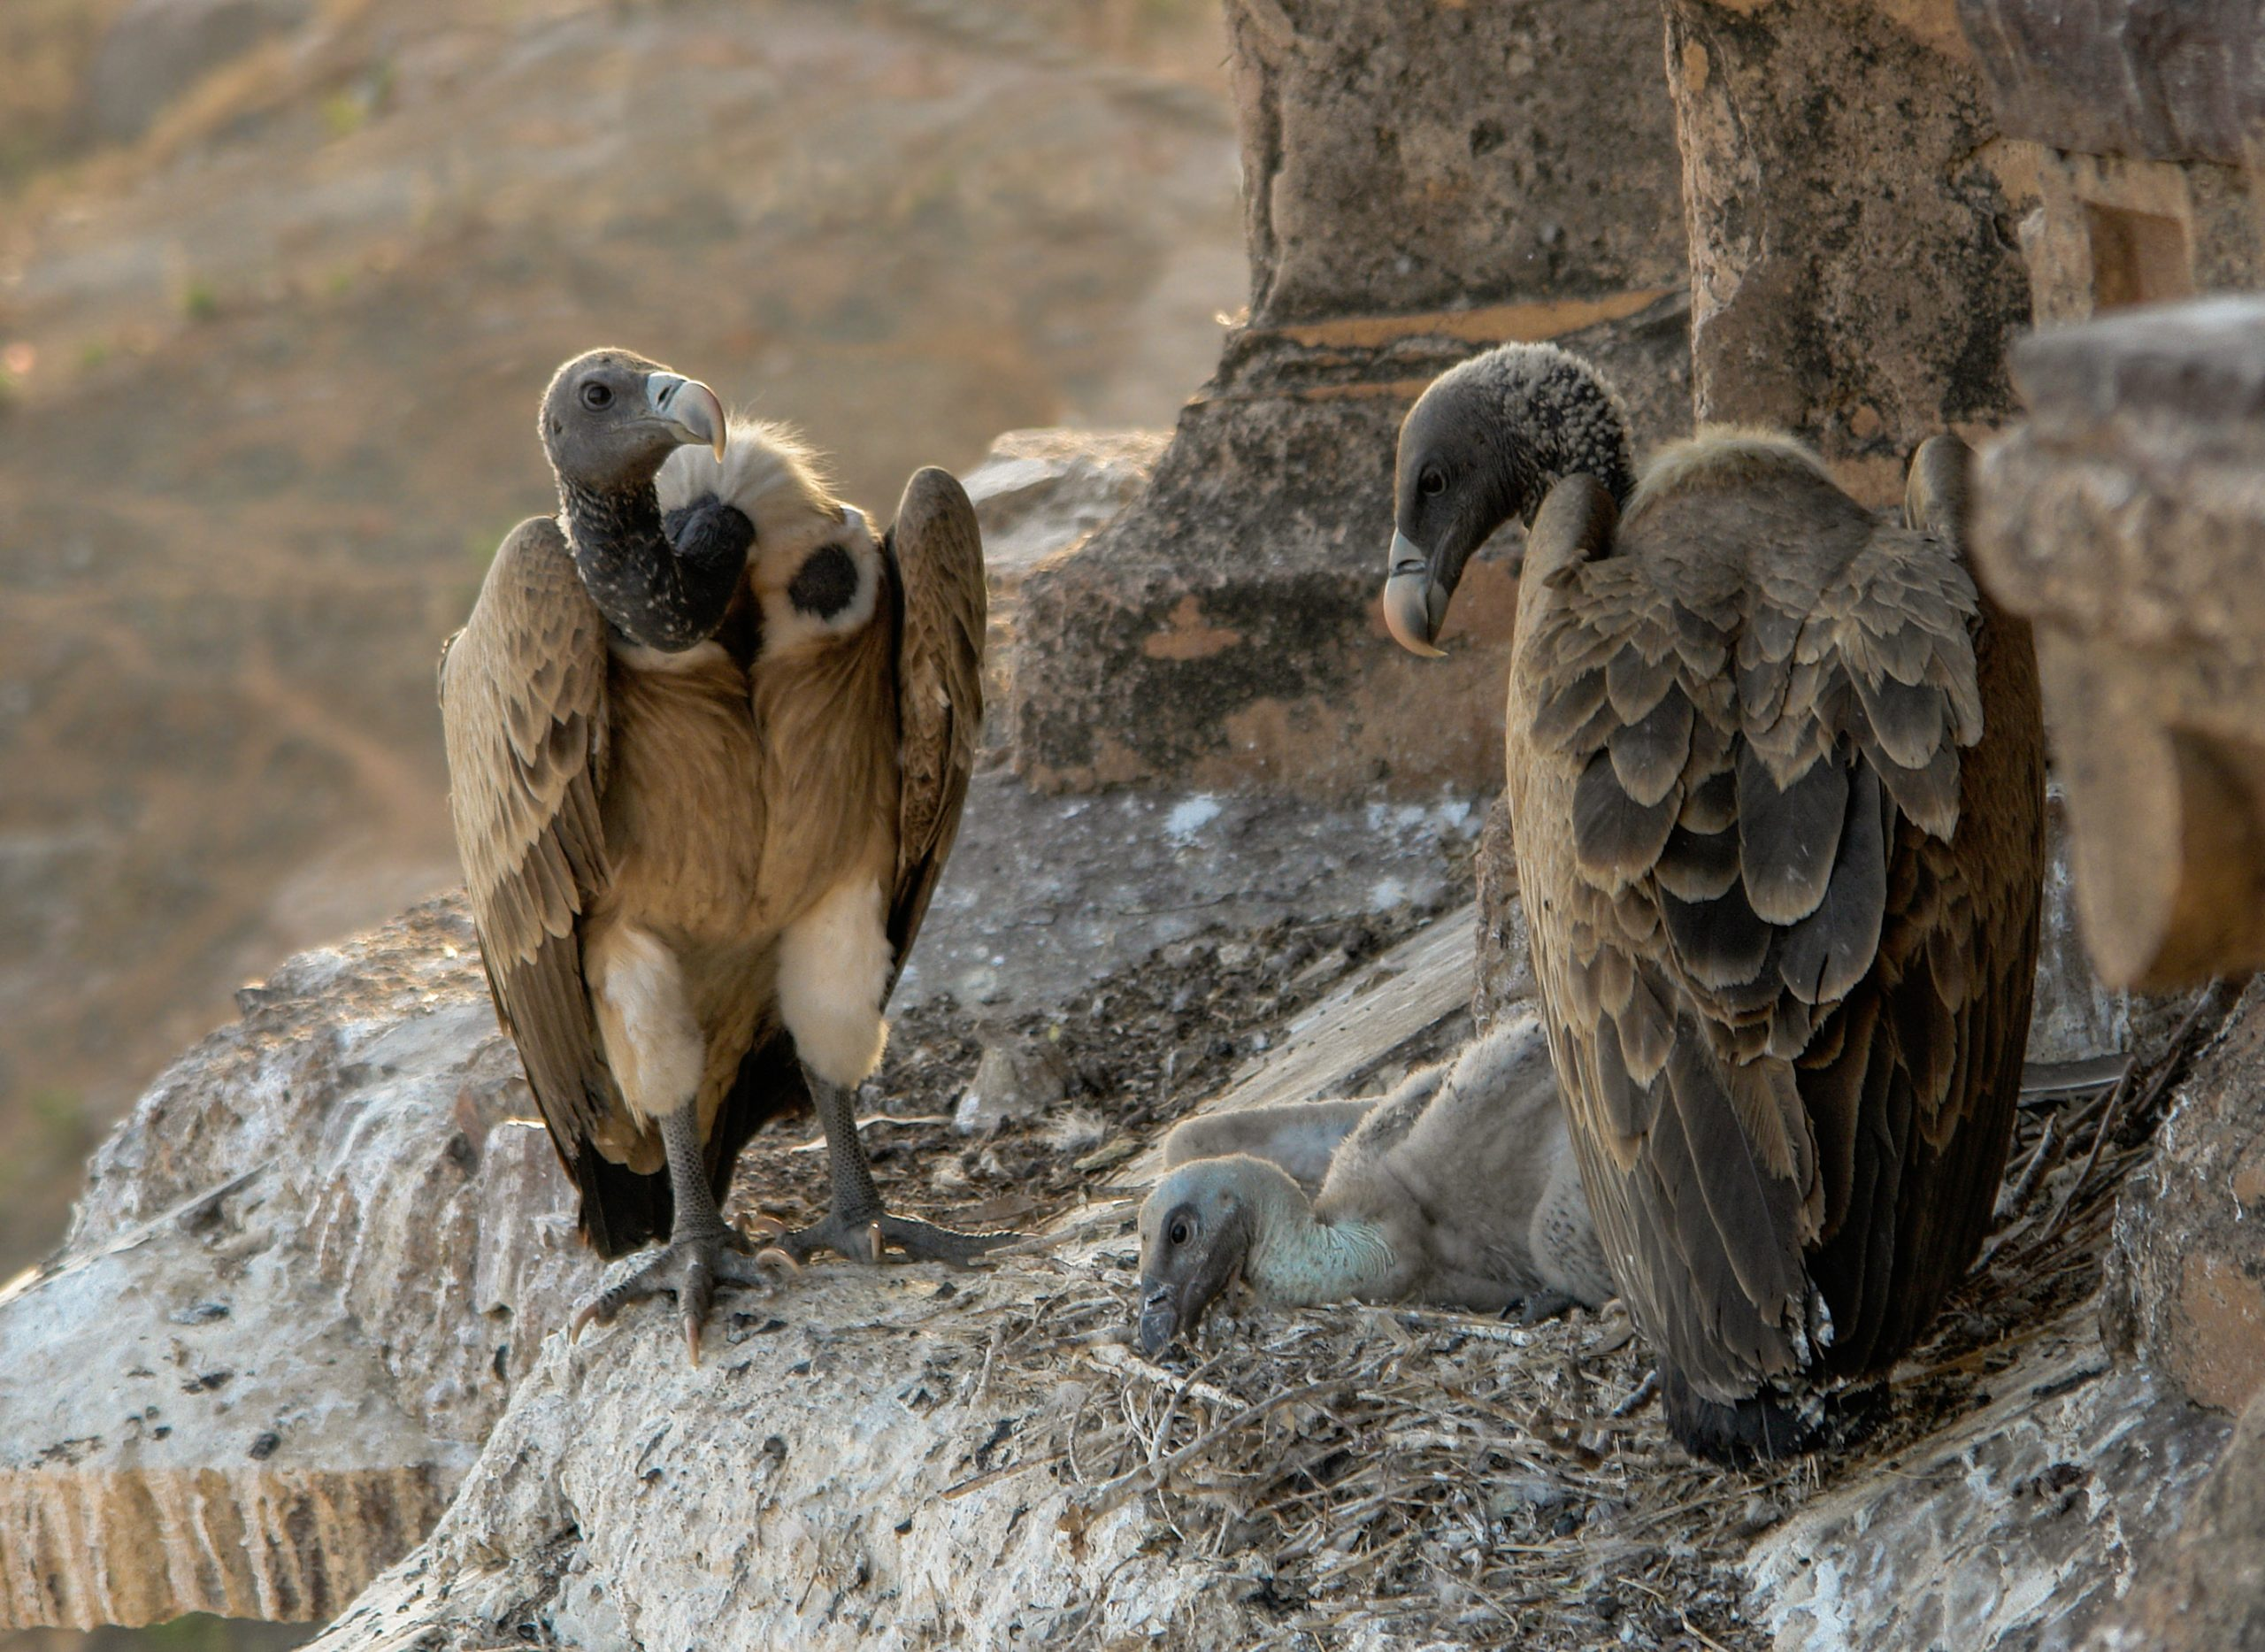 #BlakesTake: Gay Vulture Couple Become Daddies After Hatching Abandoned Egg